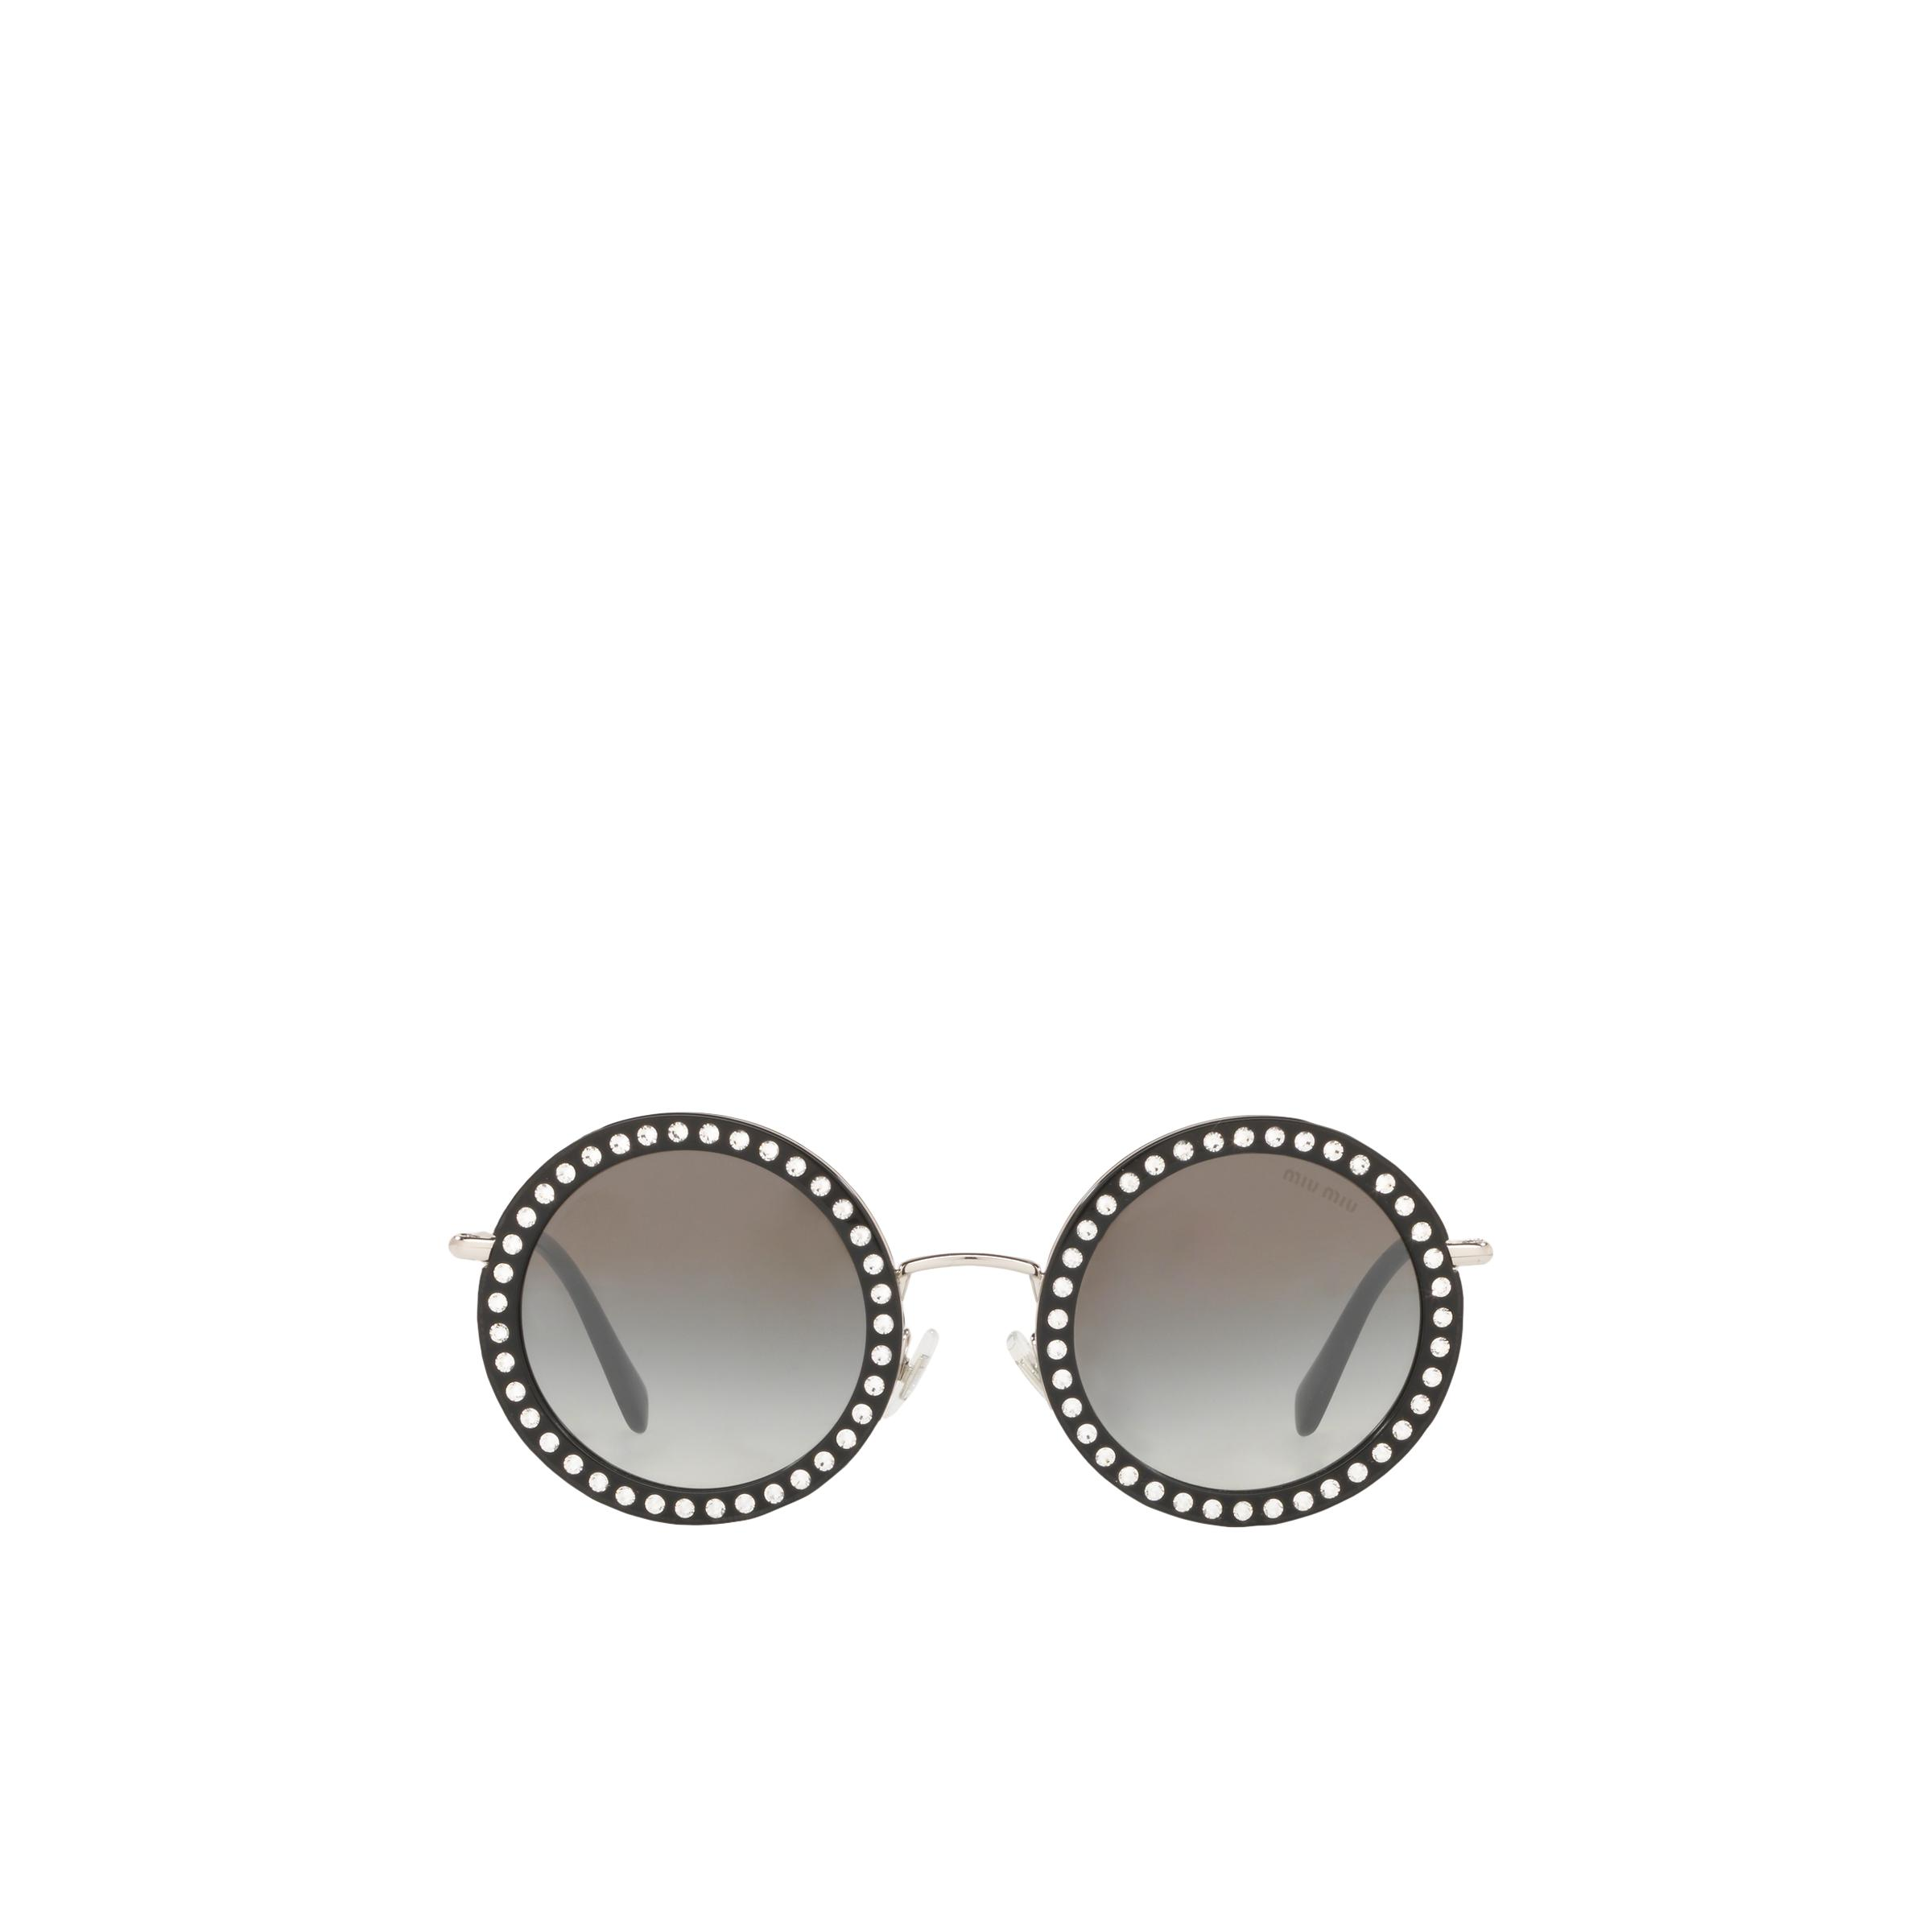 Délice Sunglasses Women Anthracite Gray To Lake Blue Gradient Lenses With Silver Mirror Finish